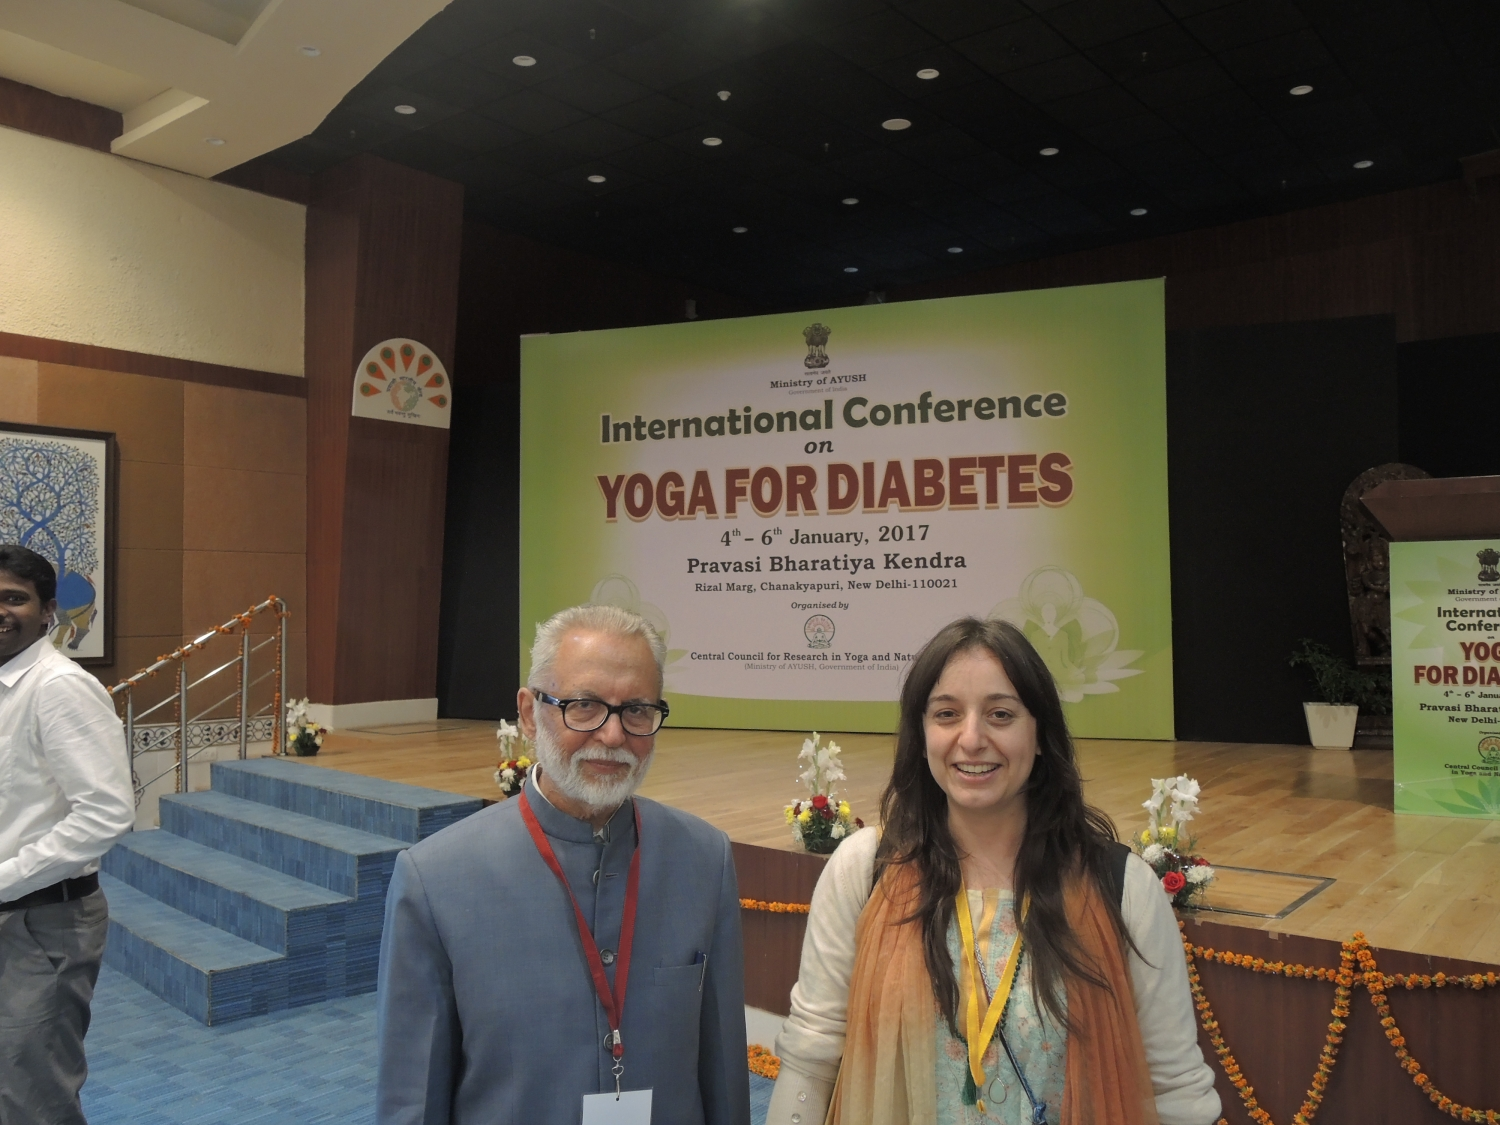 Dr. R.L. Bijlani, Former Prof. and Head of Departmente of Physiology, AIIMS, New Dillí, India